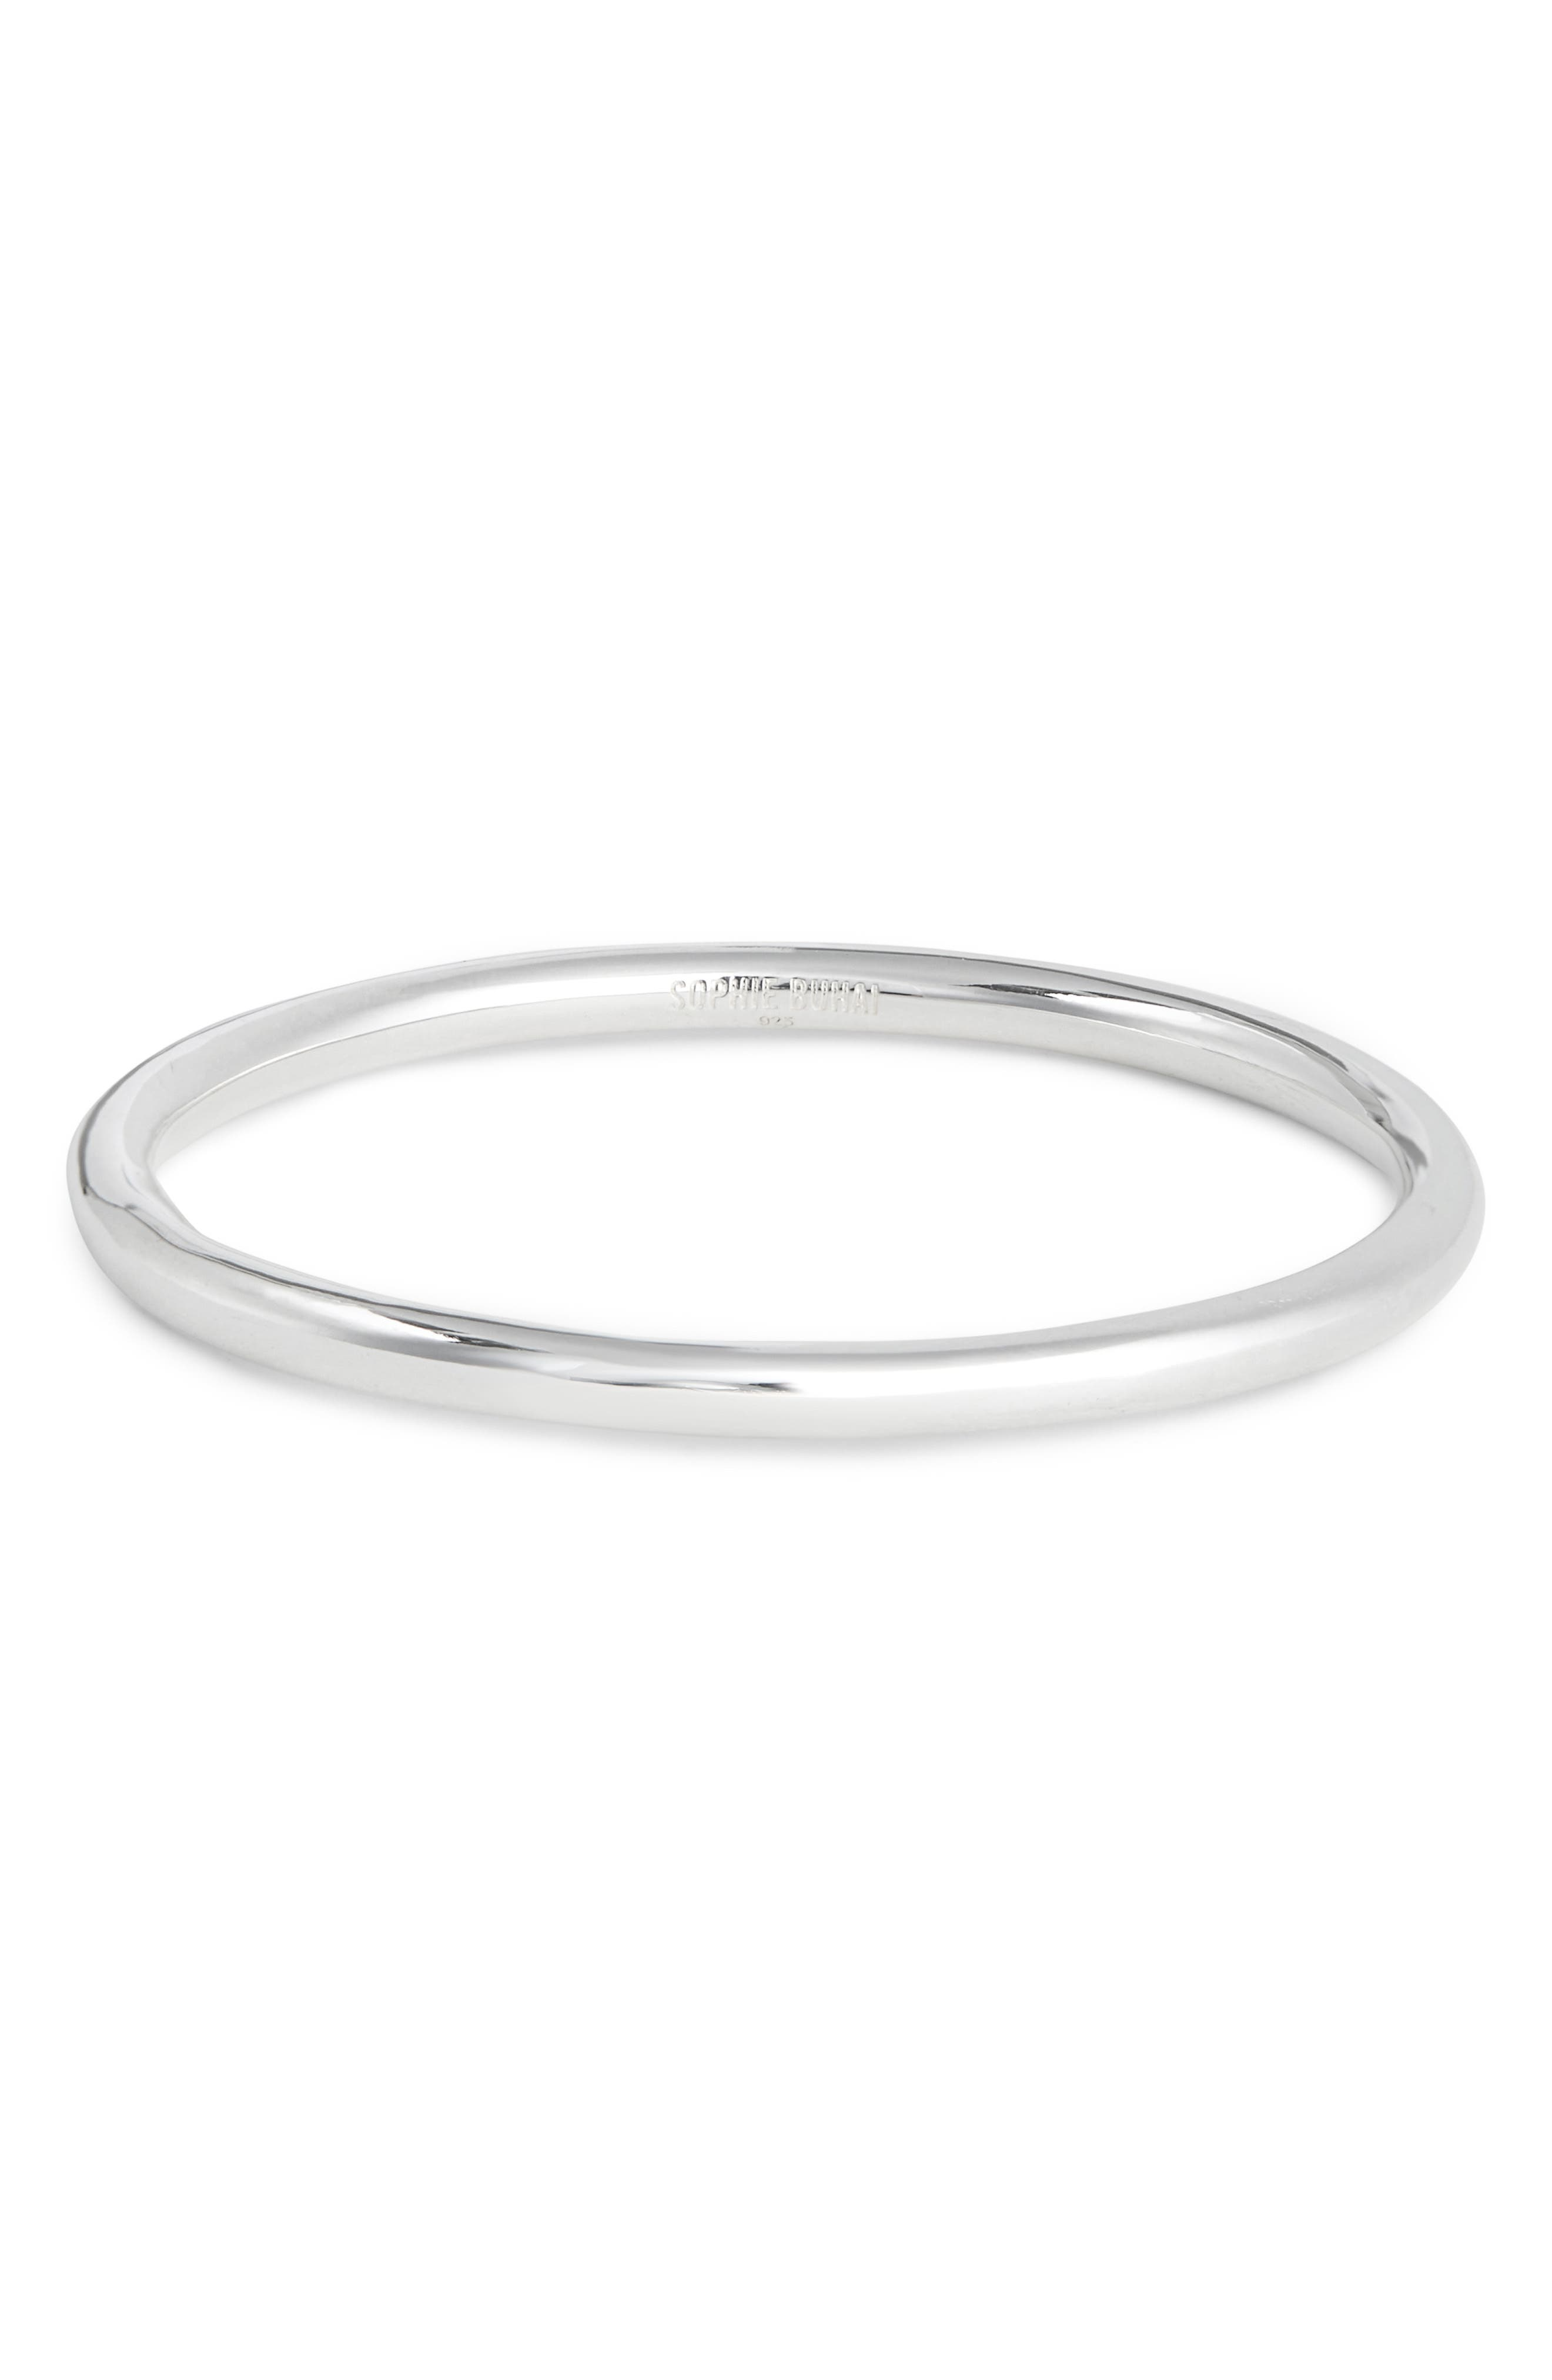 Circle Bangle,                             Main thumbnail 1, color,                             SILVER